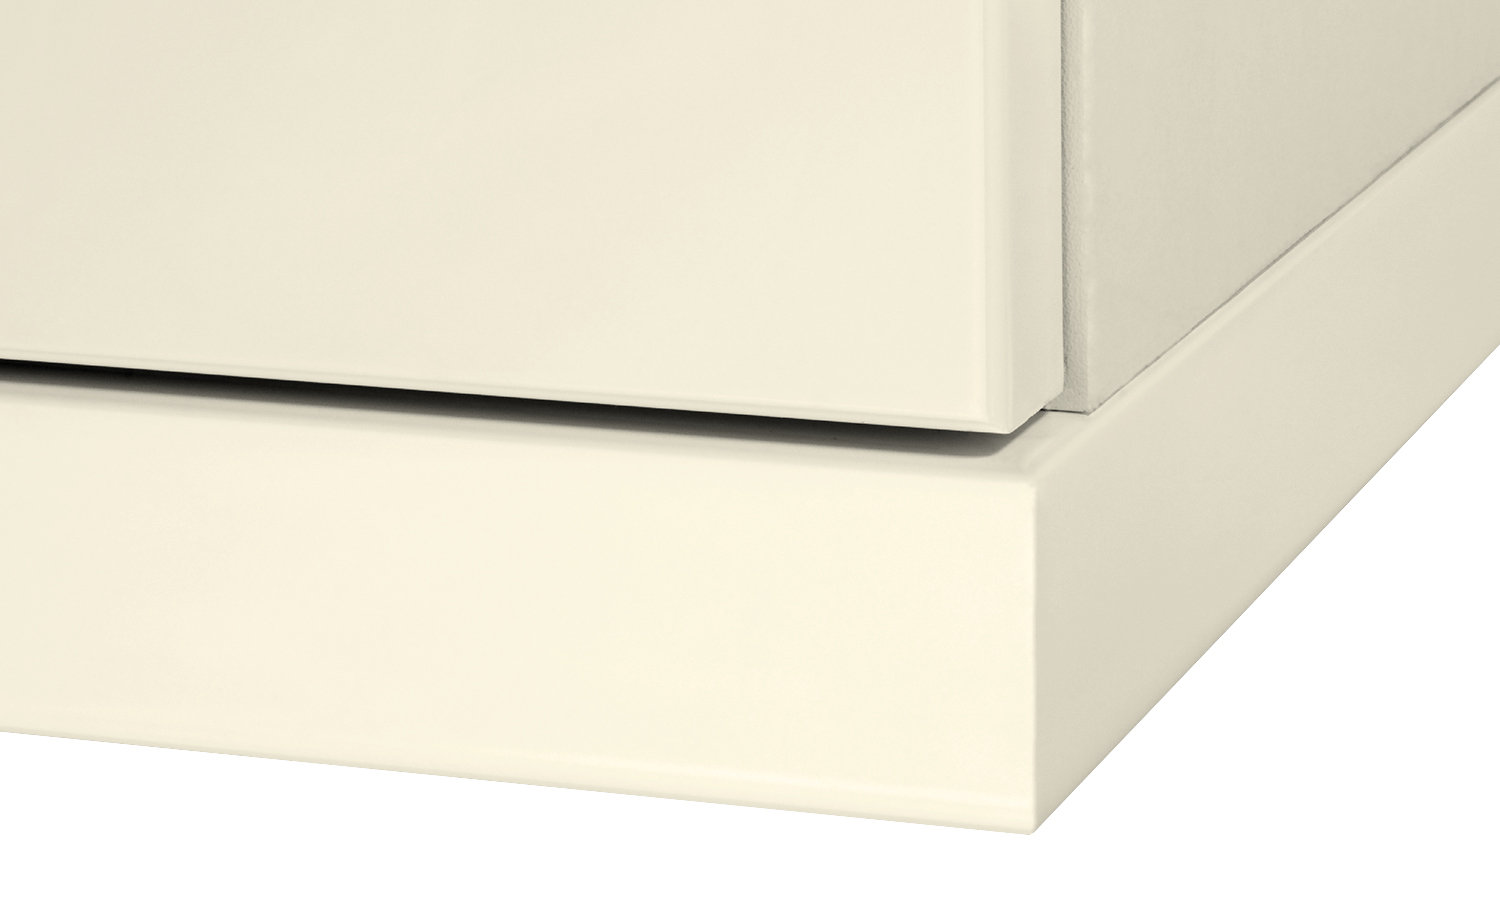 Cornice/Pelmet 2.6mtr x 25mm Square edge cream gloss to suit curved section